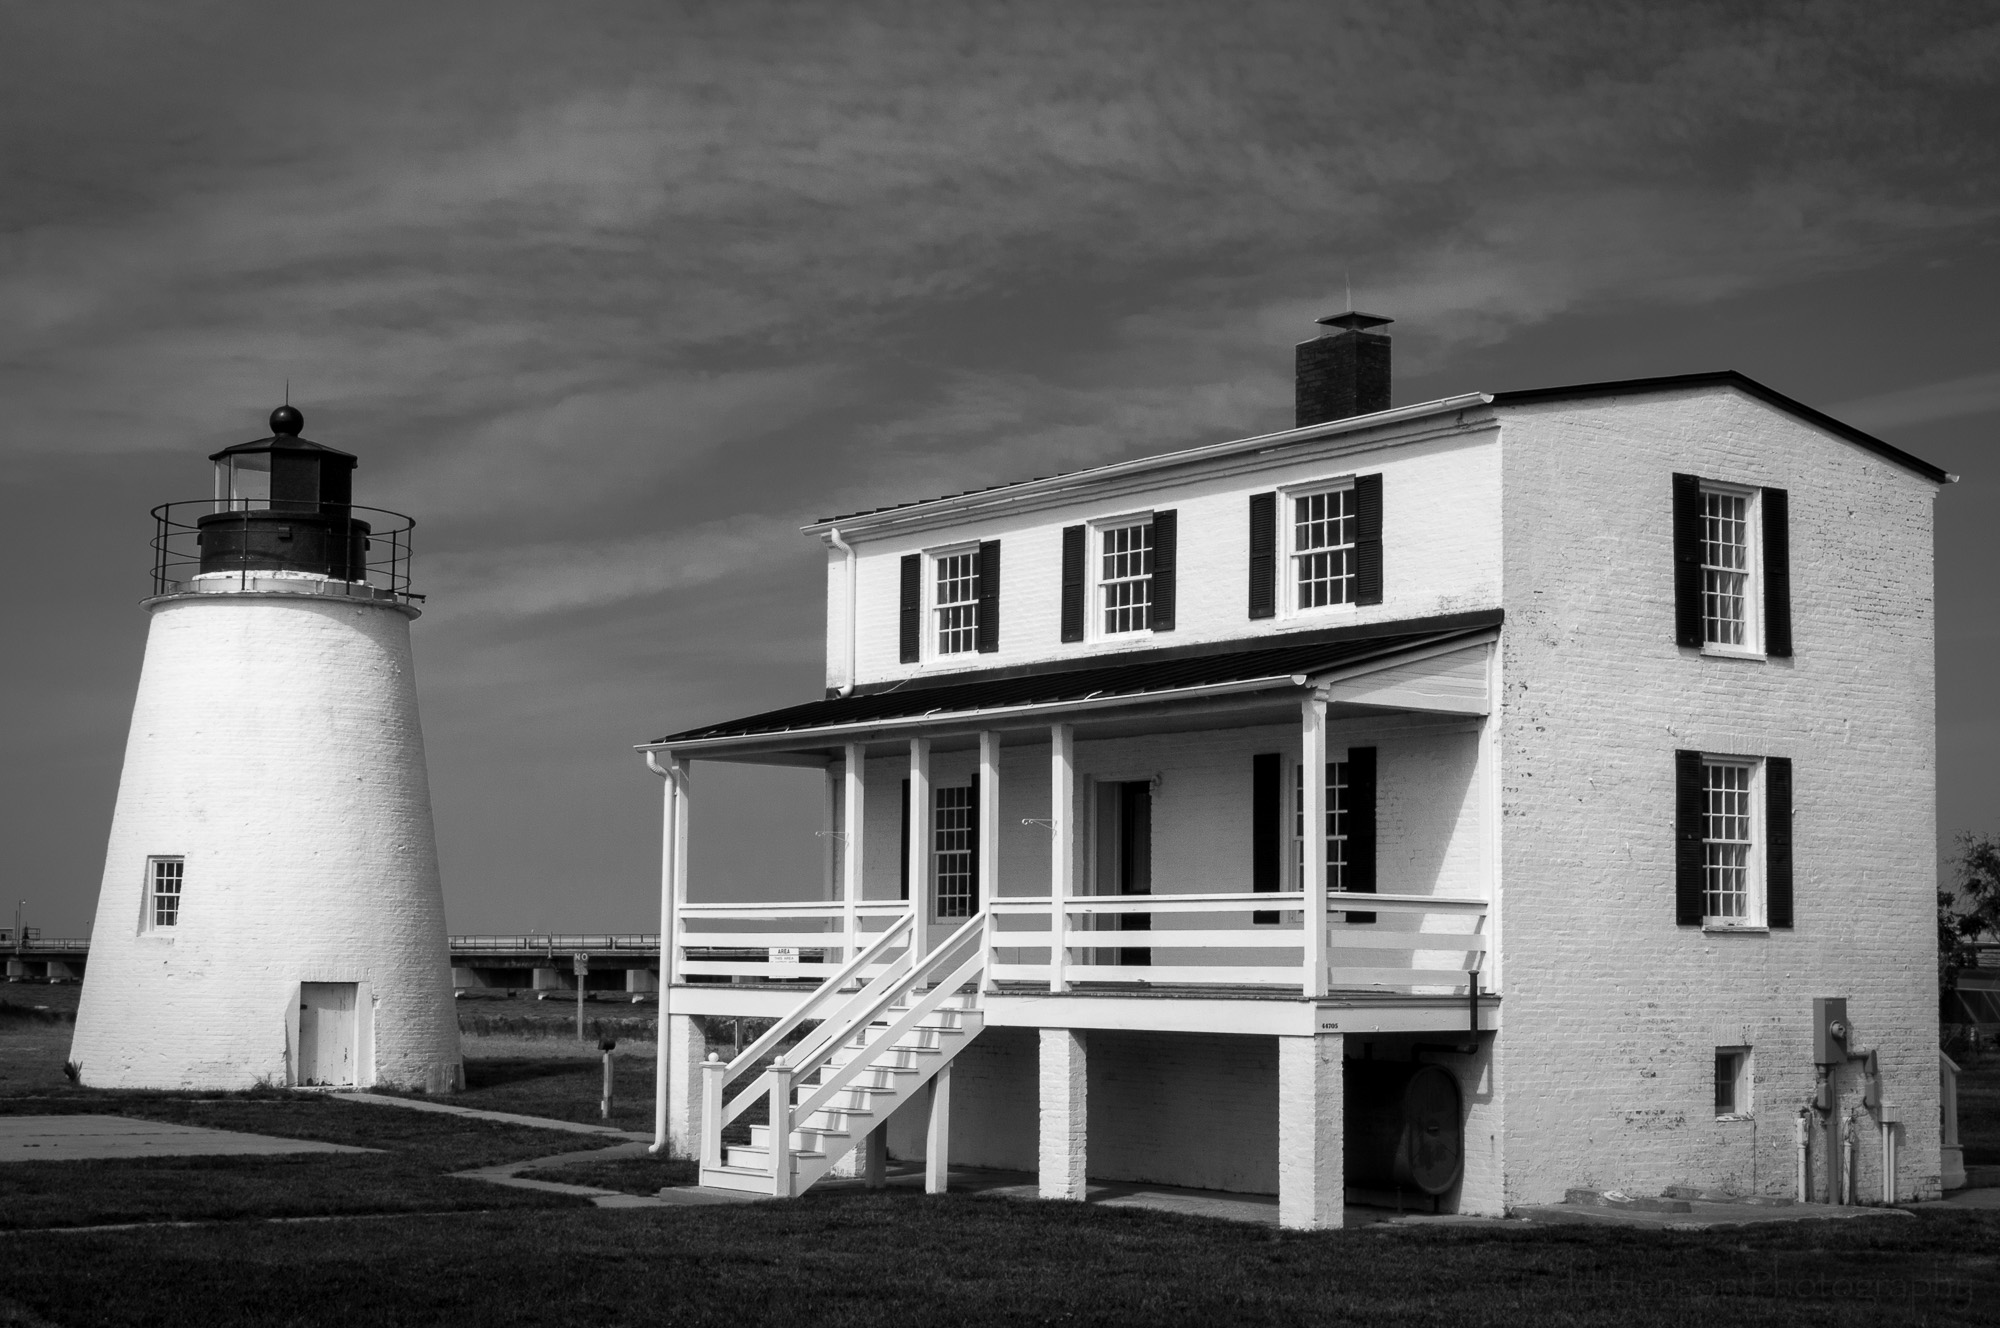 Black and white image of Piney Point Lighthouse in St. Mary's County, Maryland